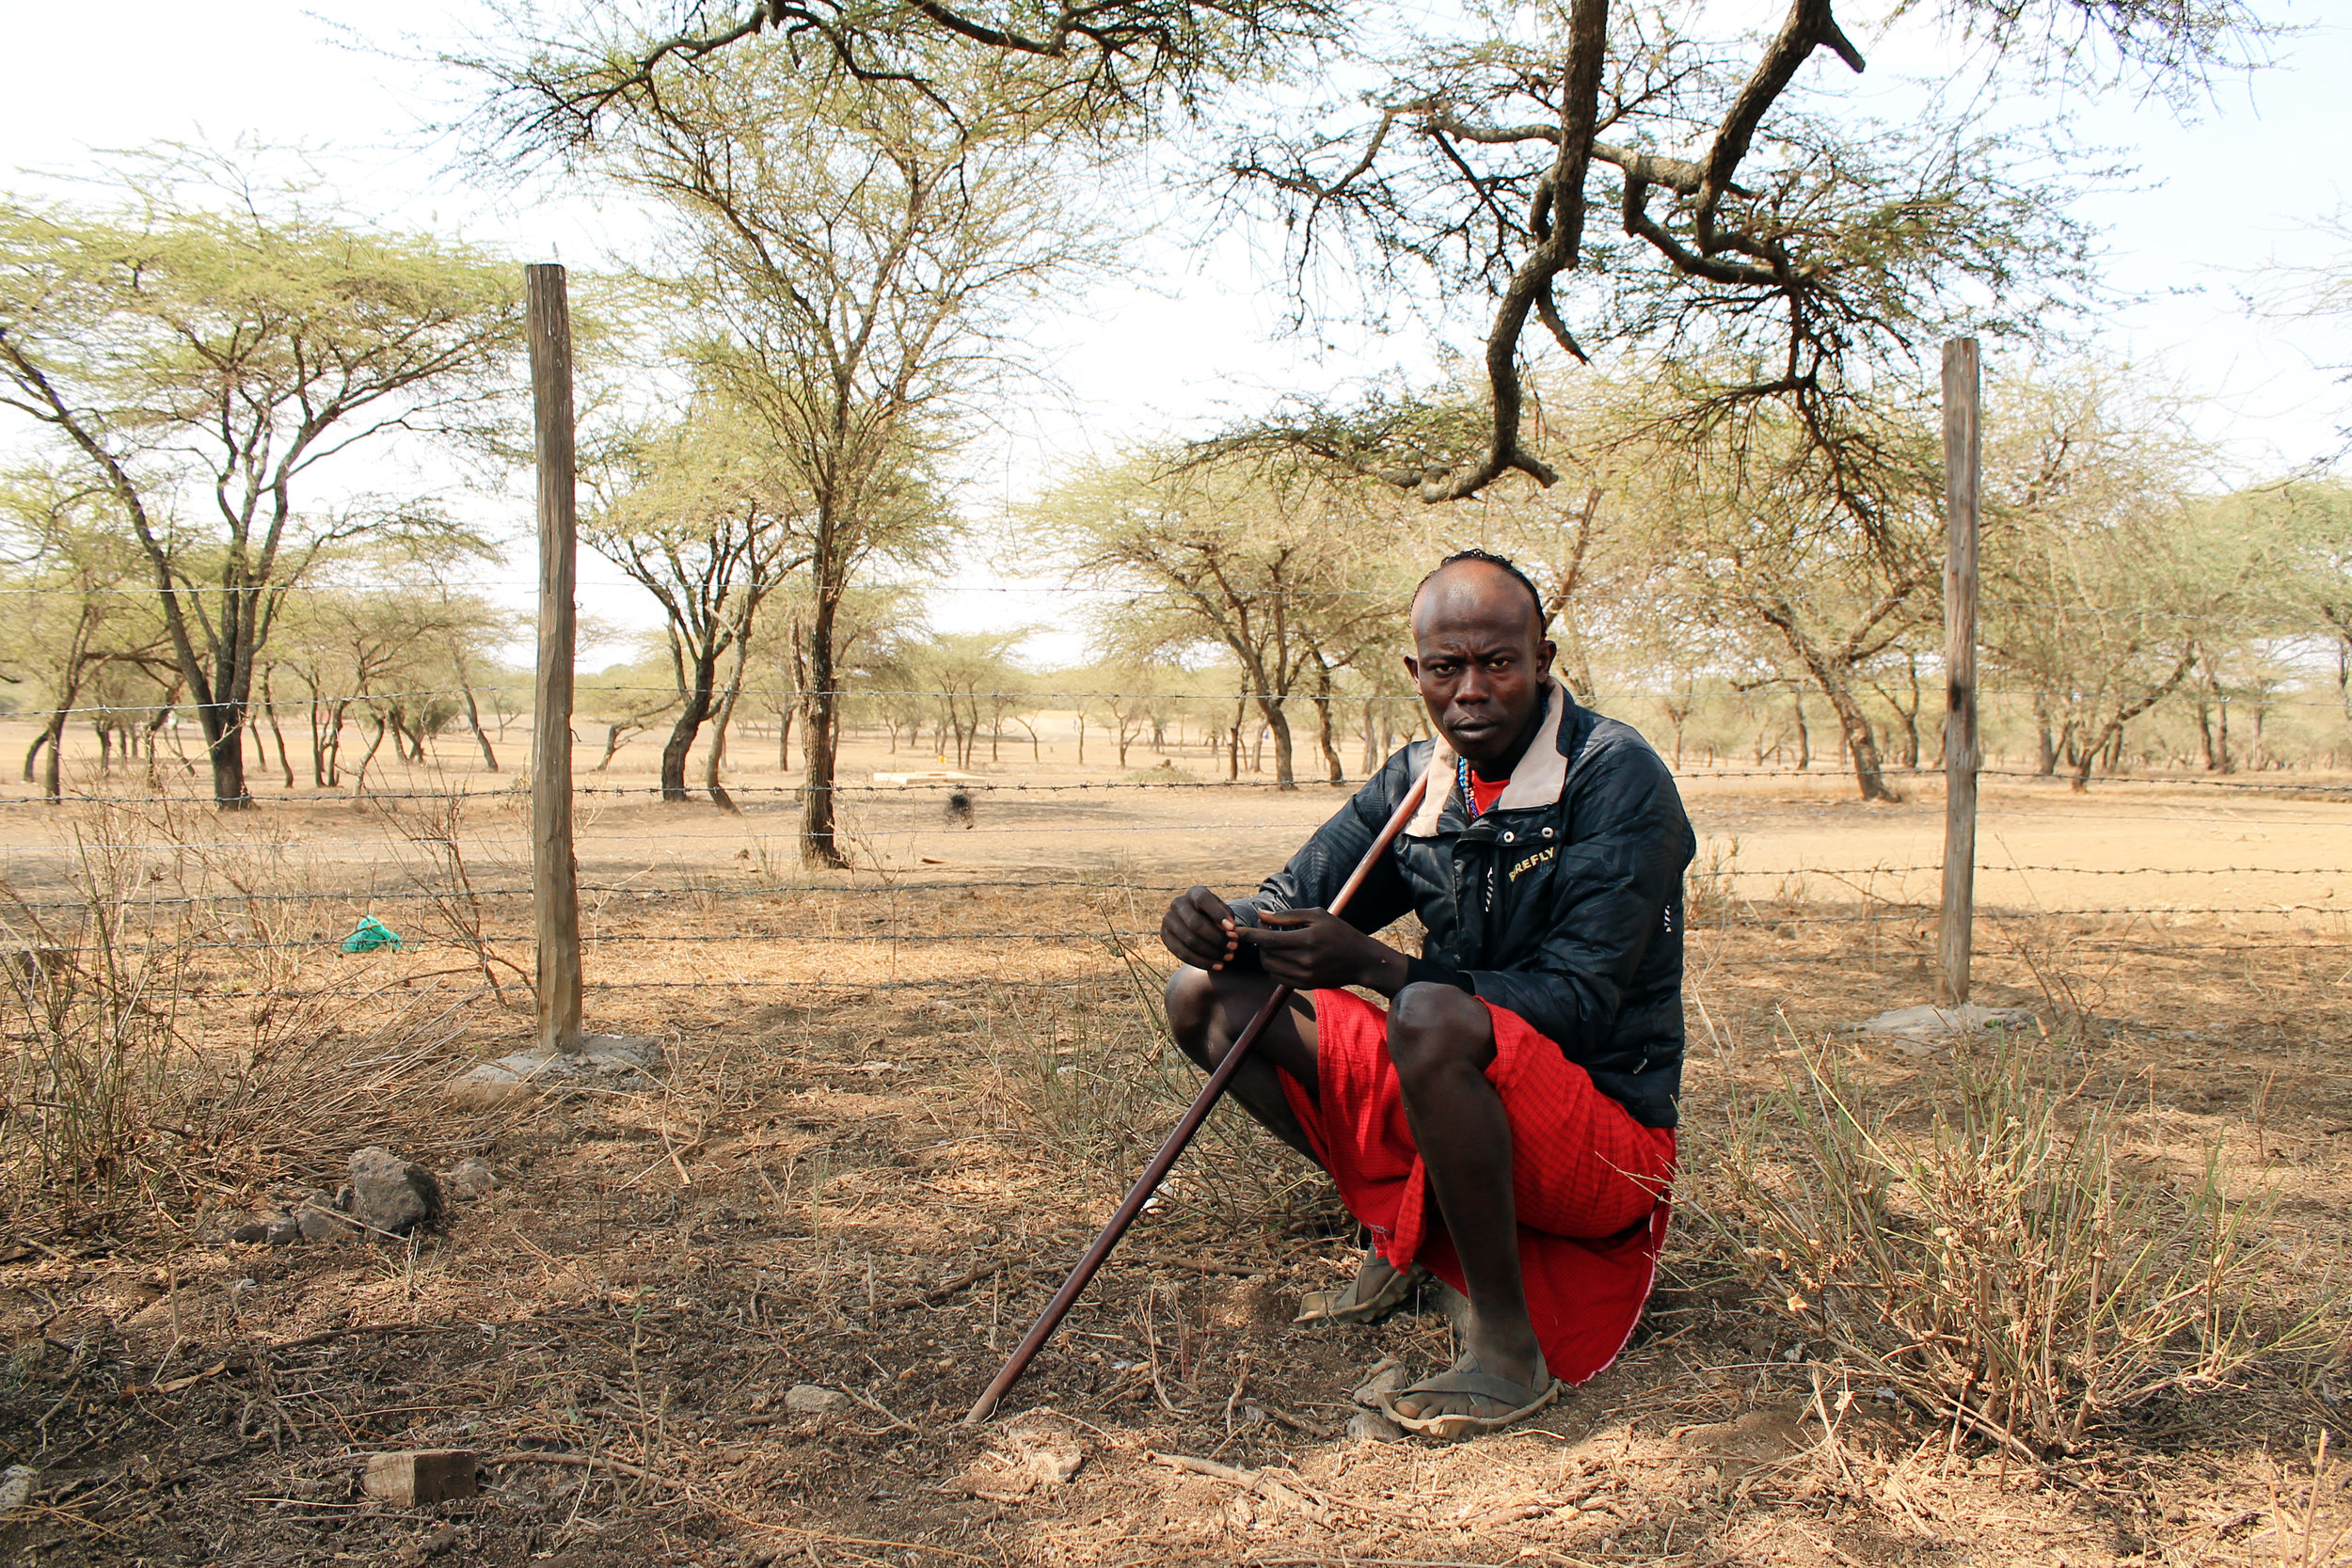 Especially in the dry season, lack of water and vegetation due to degradation make it very difficult for herder and head of the morans (Maasai warriors) Masheer Torei to sustain his livestock. Torei now needs to travel long distances in search of pasture, and even further to find water. (© Conservation International/photo by Christina Ender)